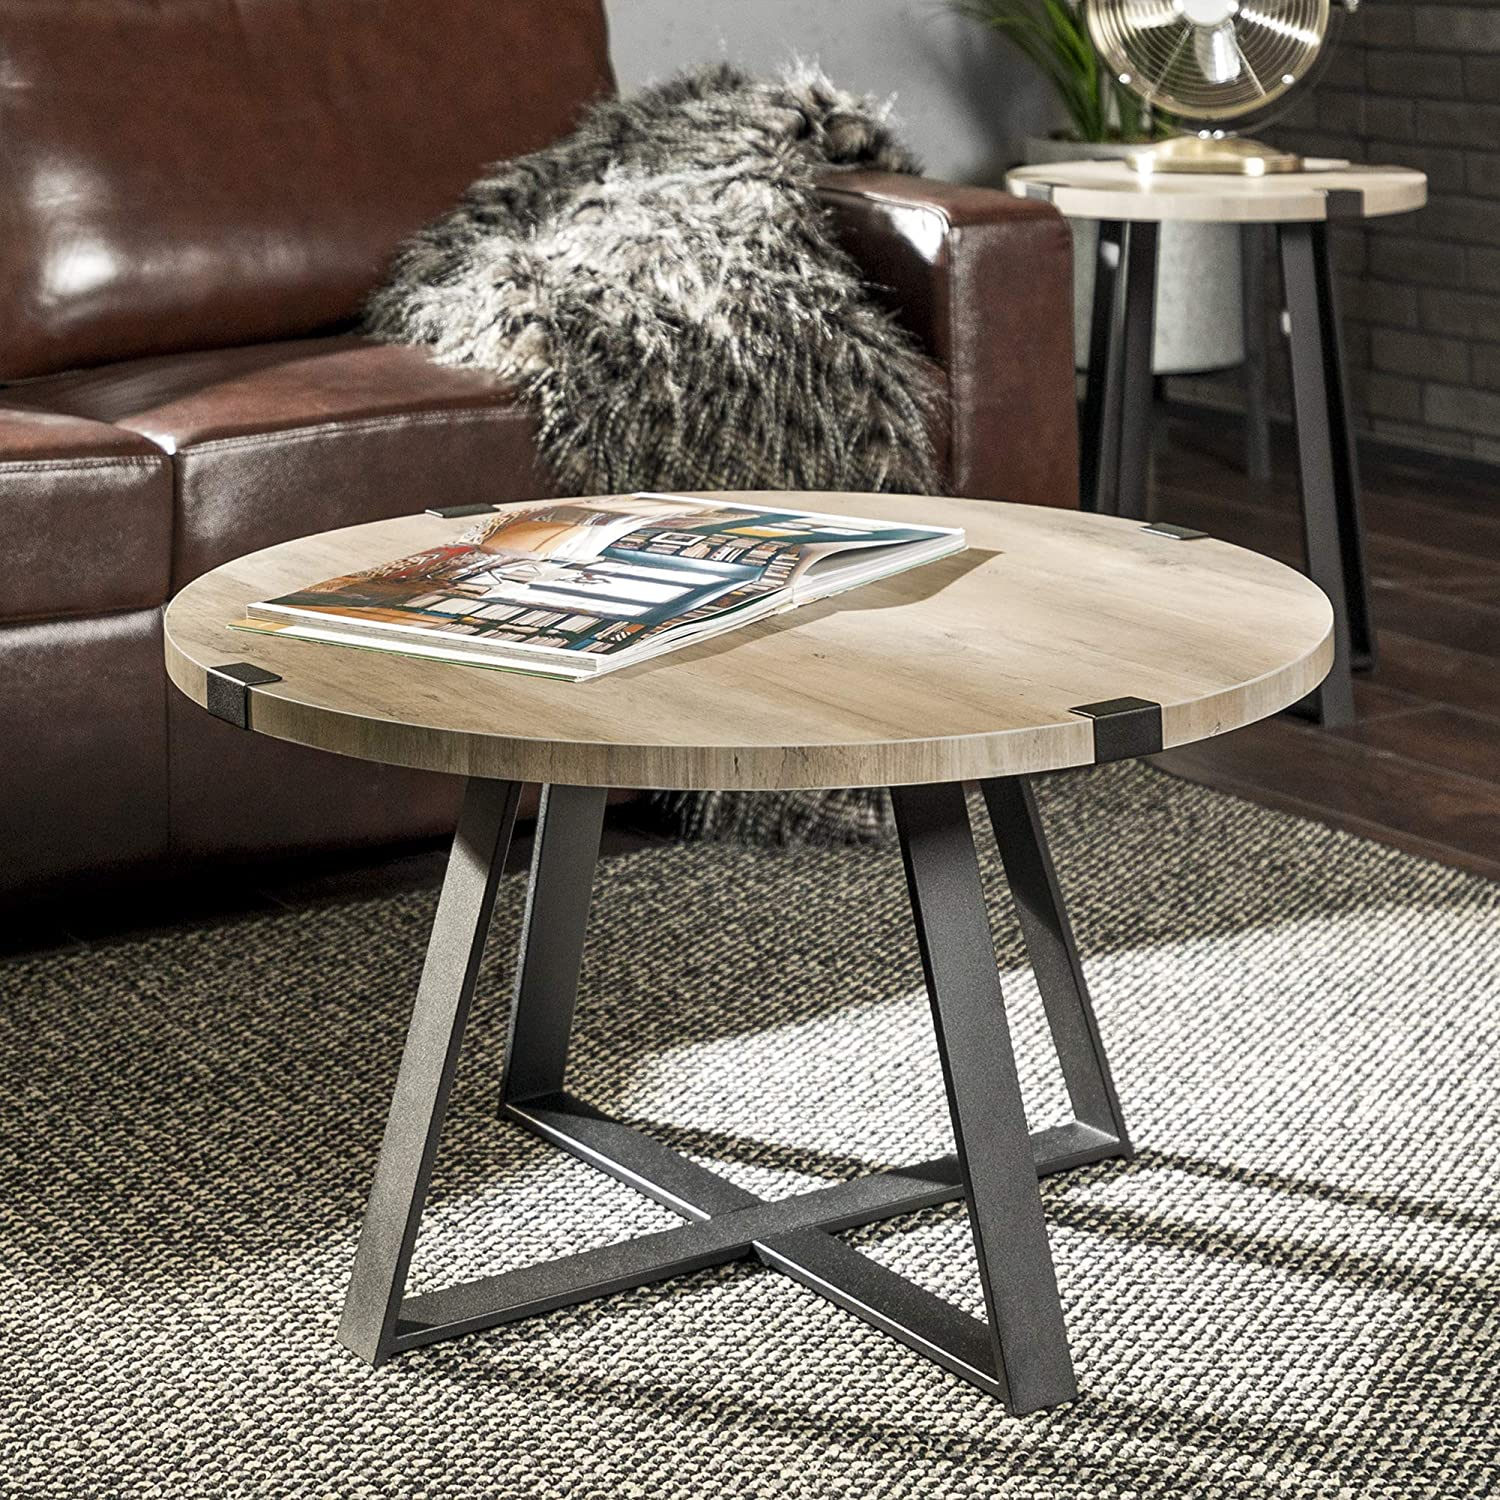 WE Furniture AZF30MWCTGW Rustic Farmhouse Round Metal Coffee Accent Table Living Room Black 30 Inch Grey